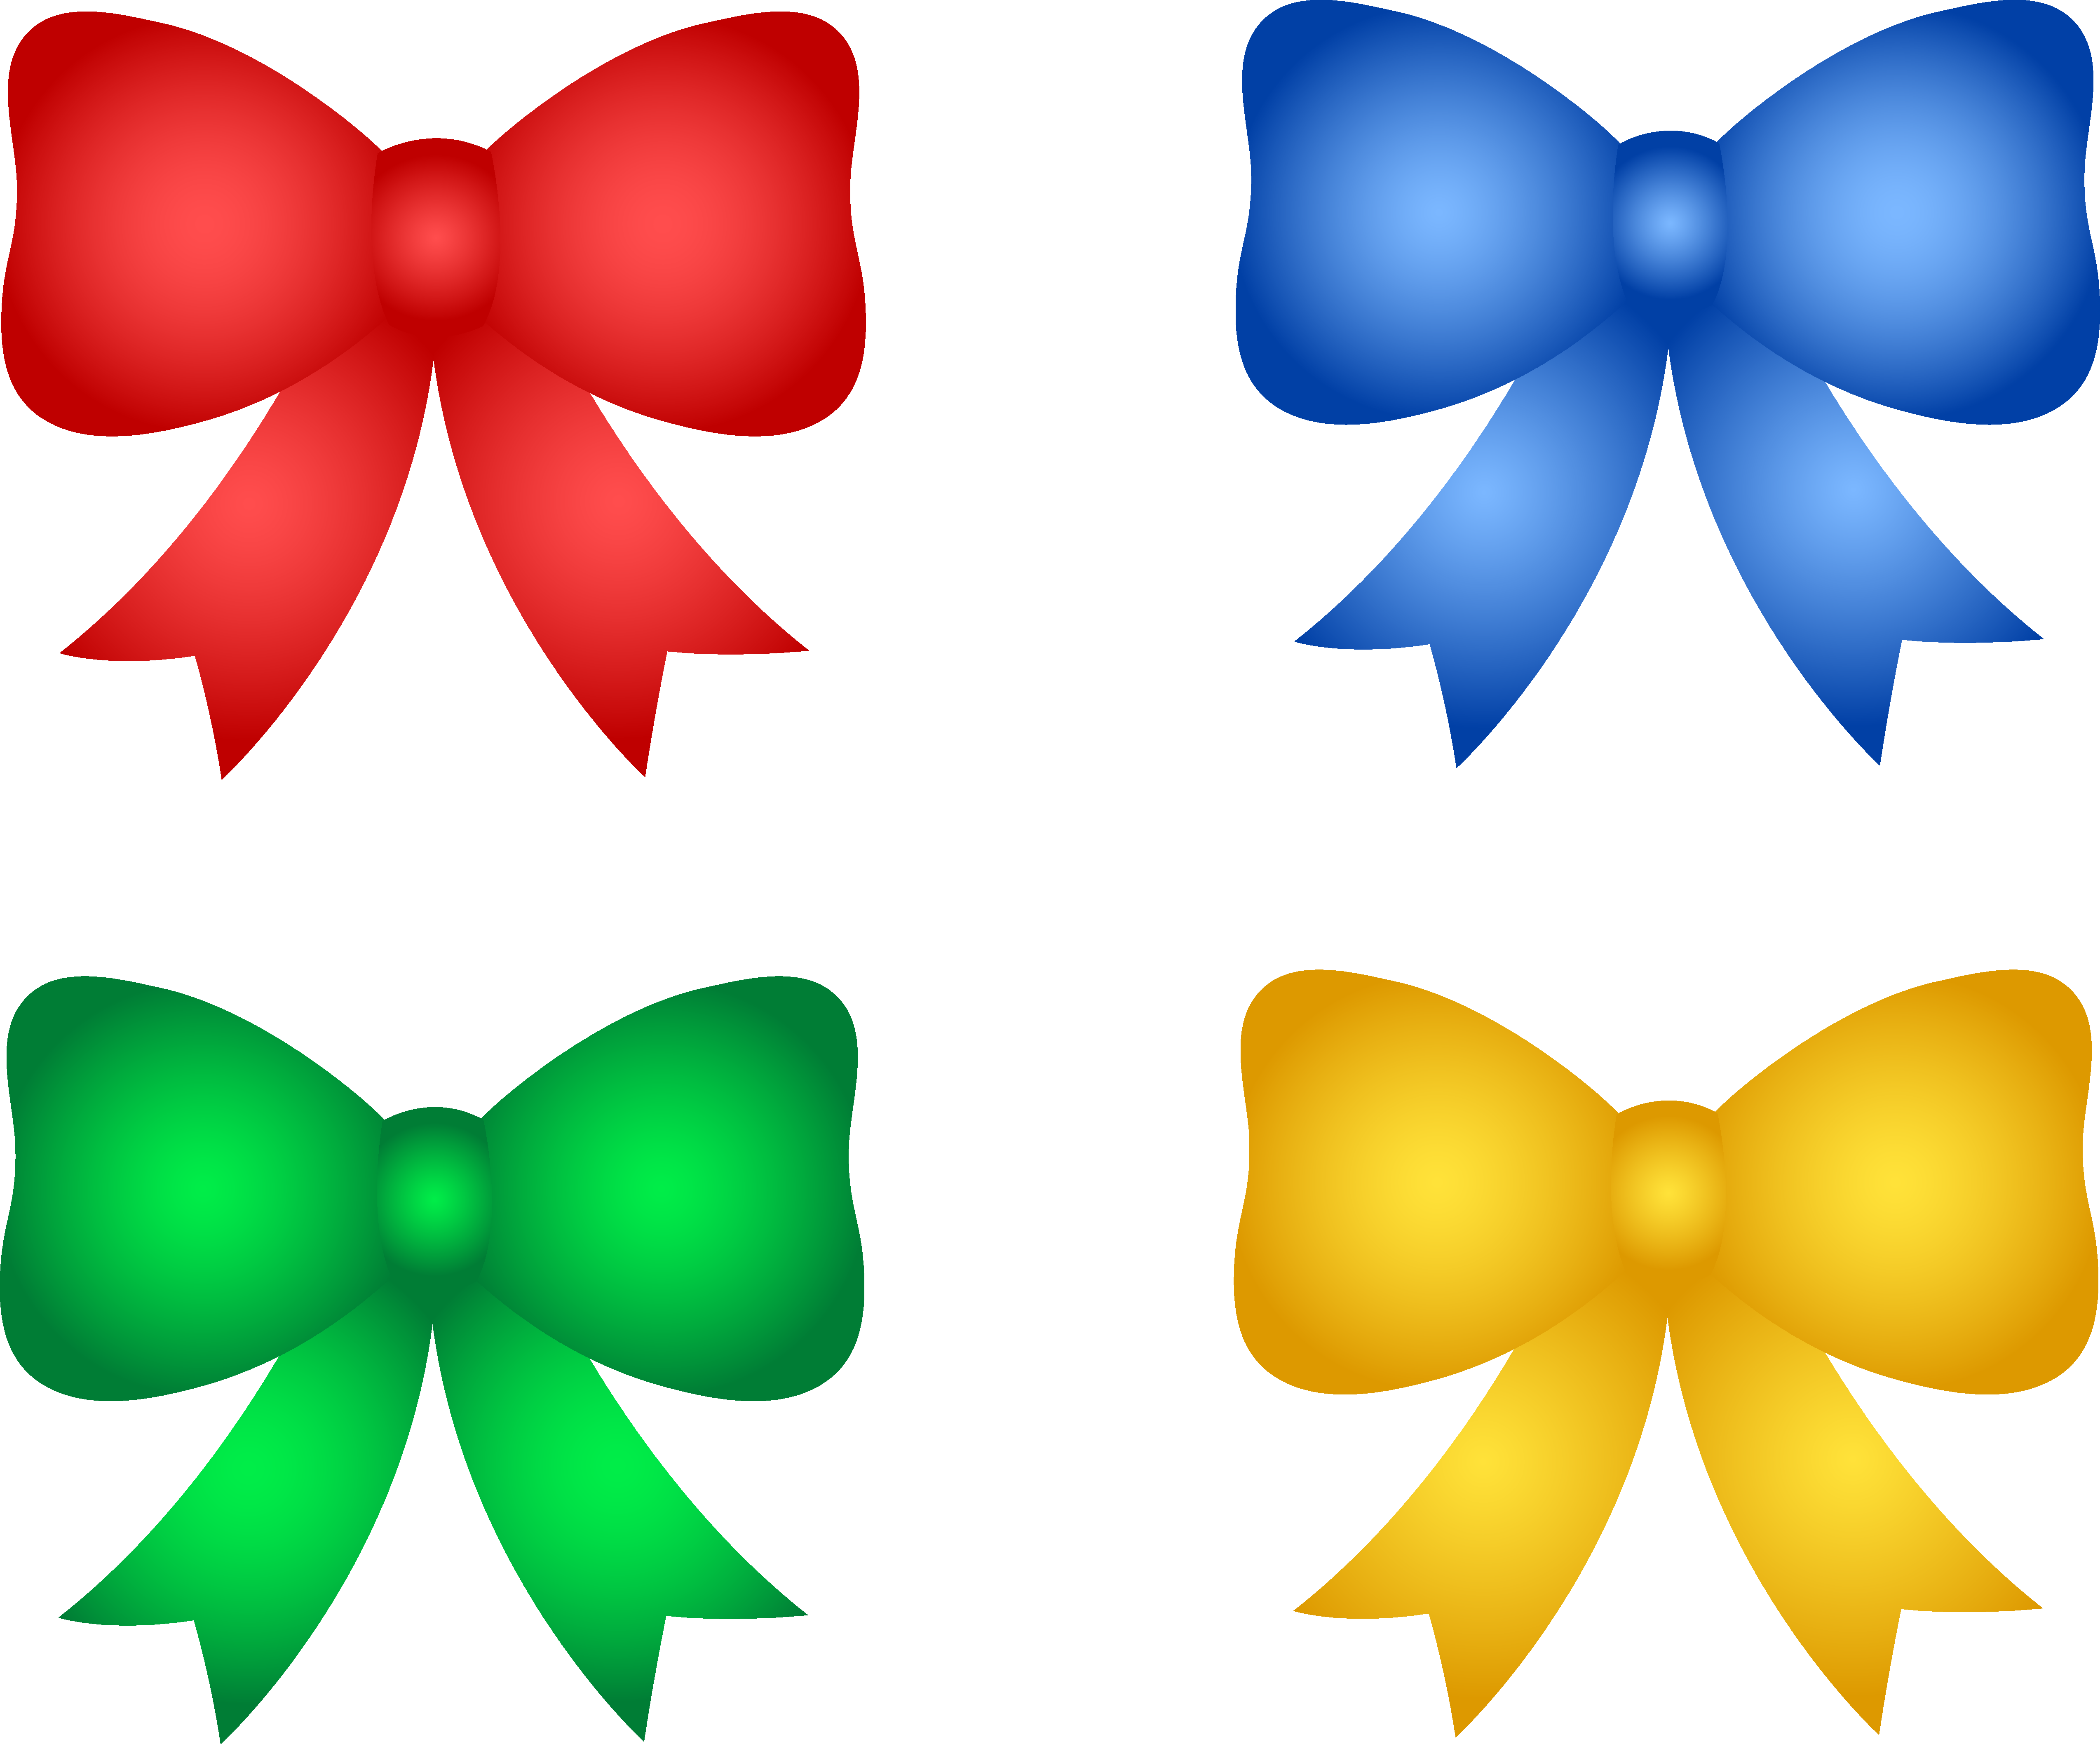 hair bow clipart at getdrawings com free for personal use hair bow rh getdrawings com clip art bowls clip art browser program